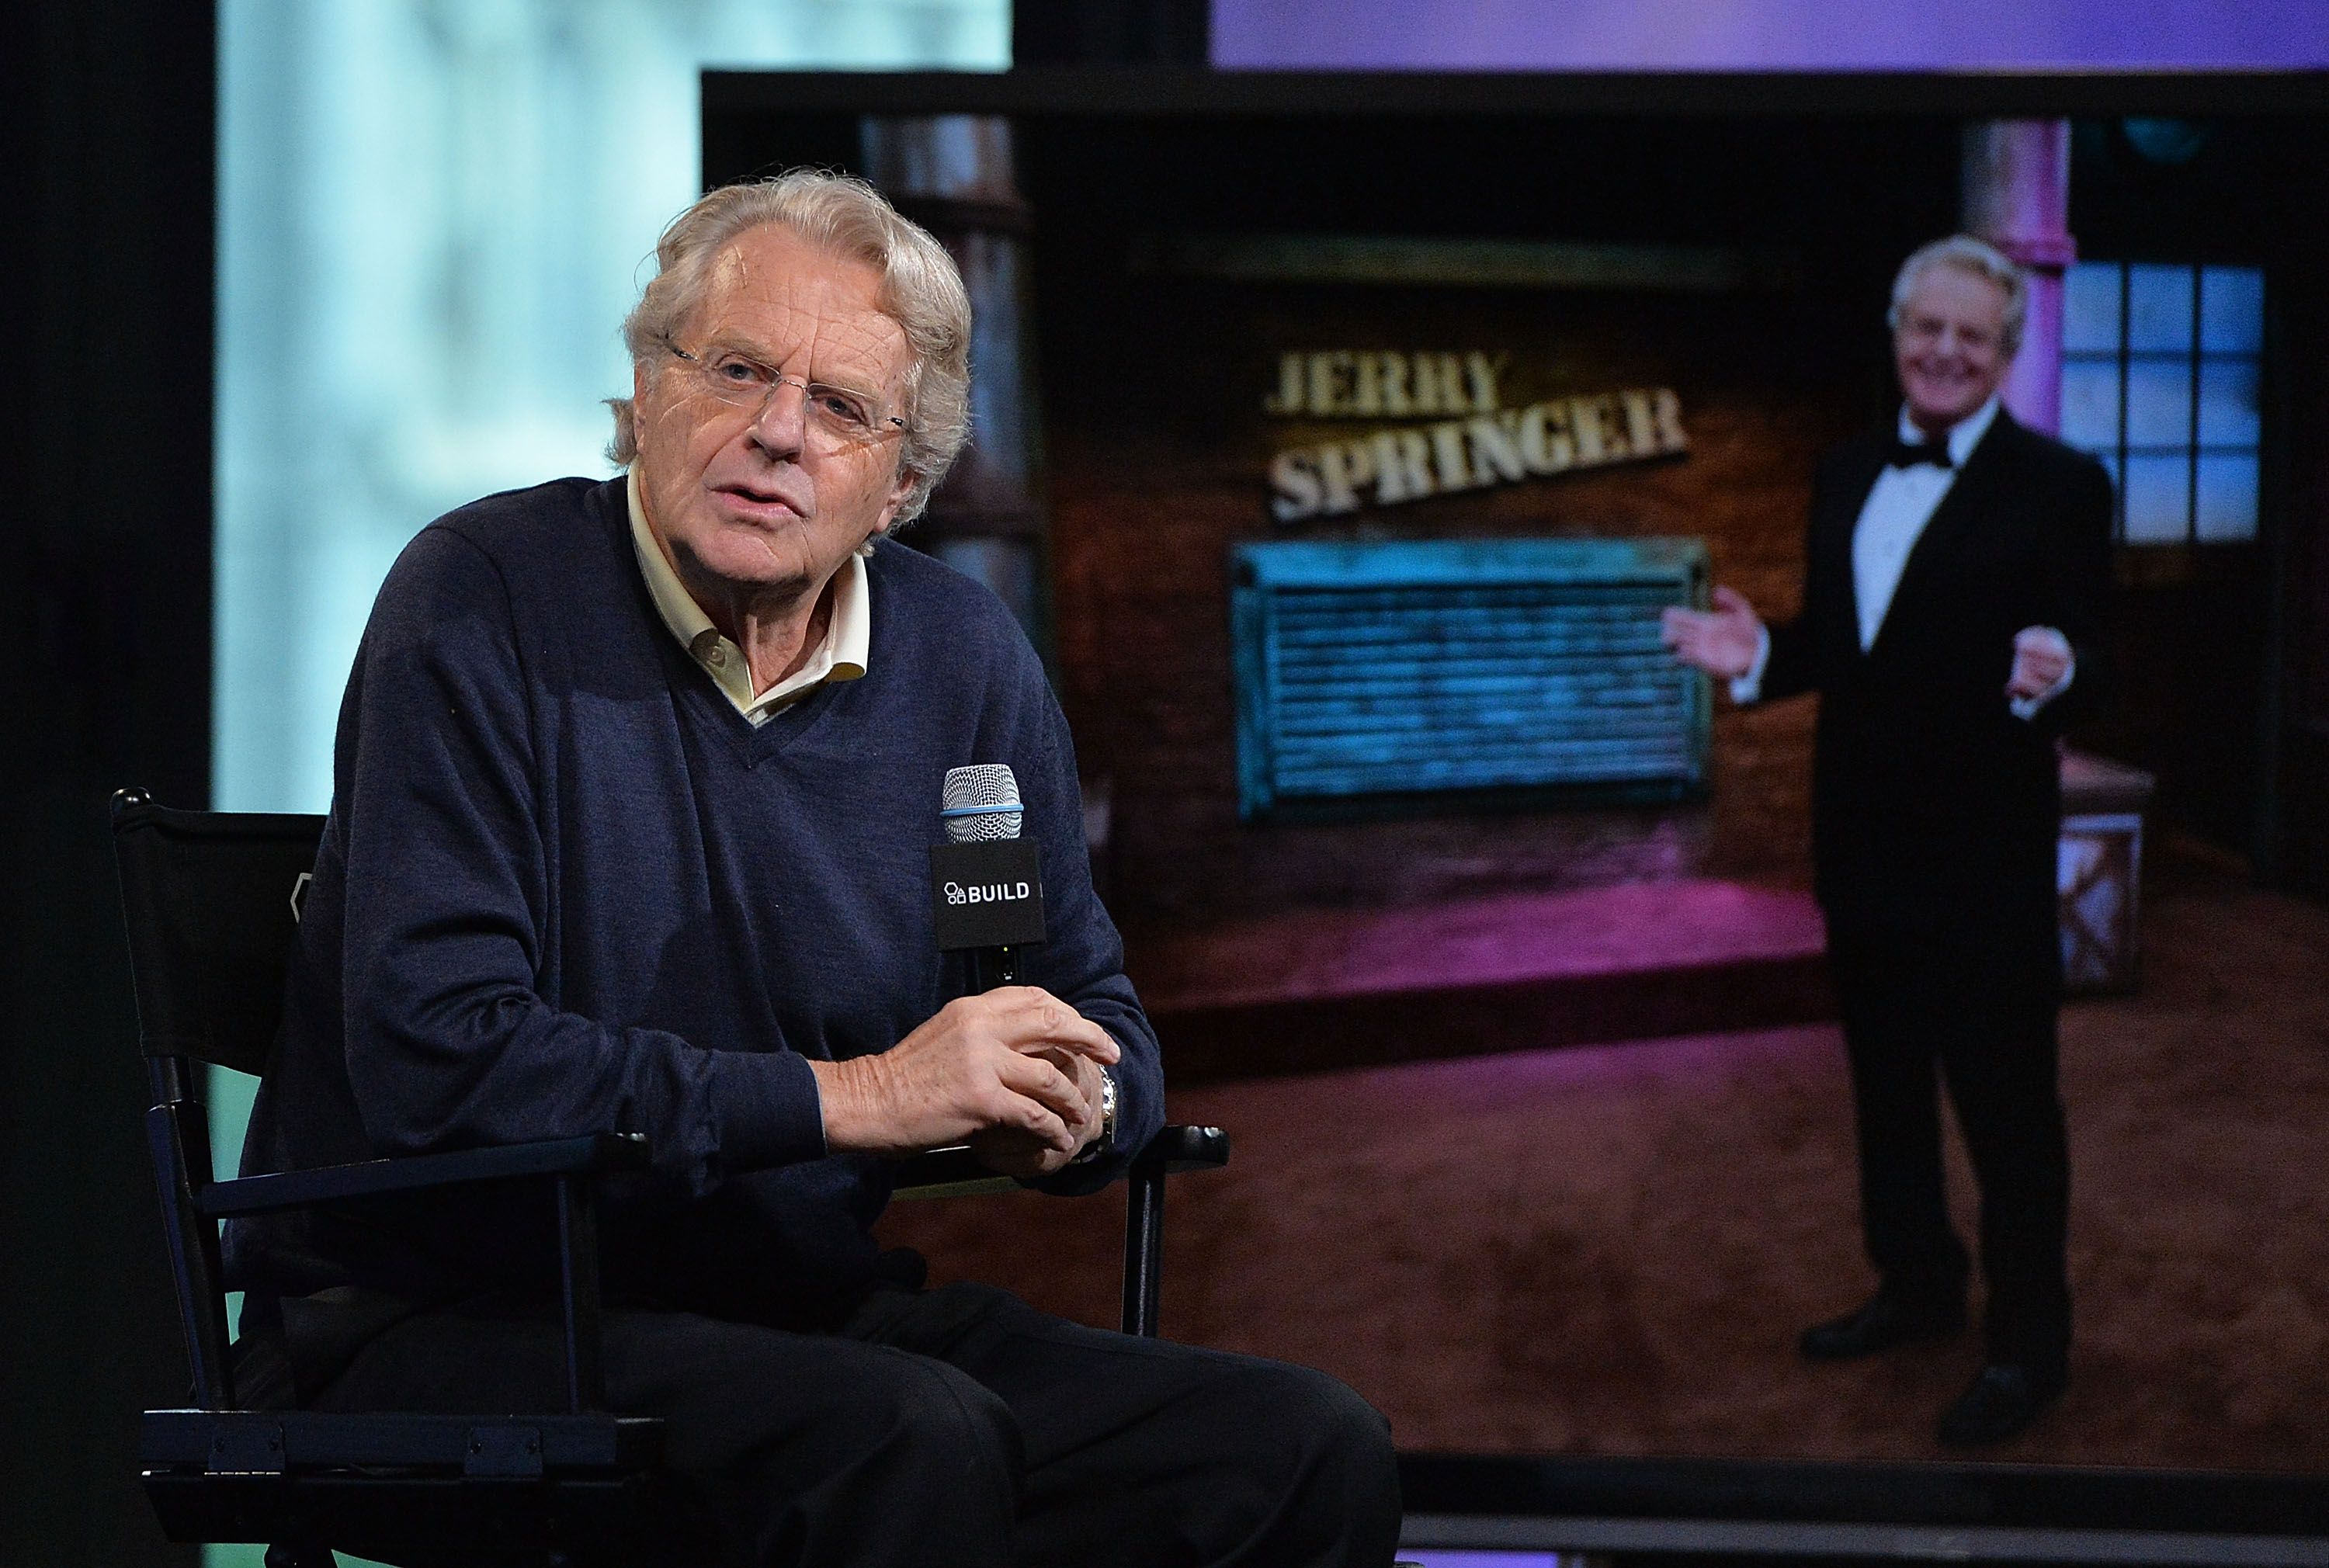 Jerry Springer defends his show following the deaths of two guests